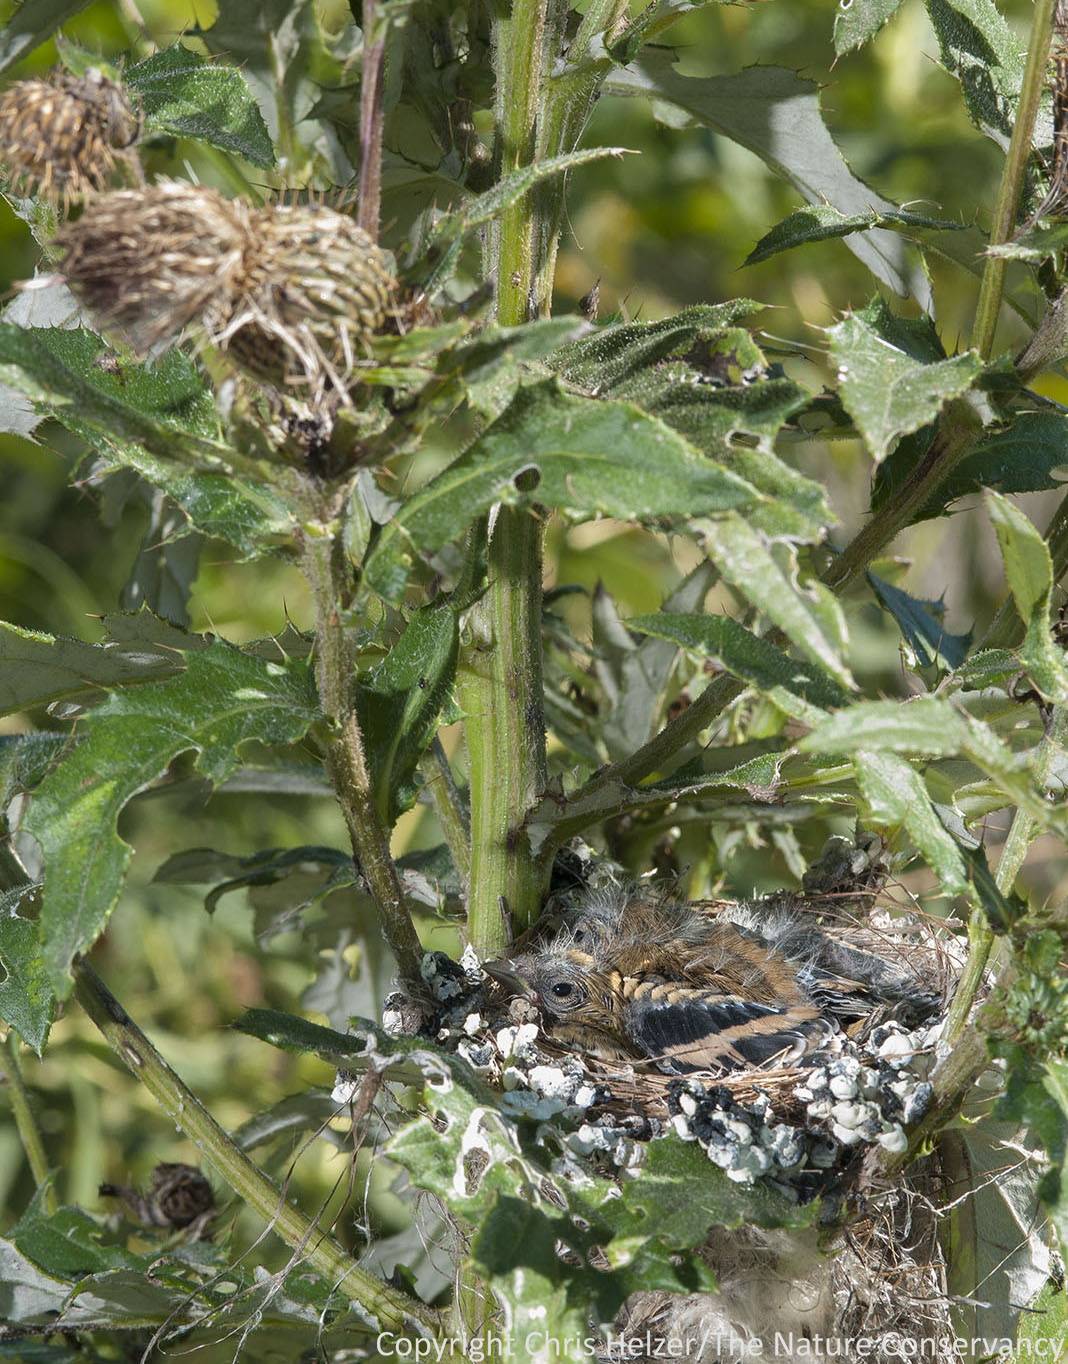 A better view of the nest placement within the tall thistle plant.